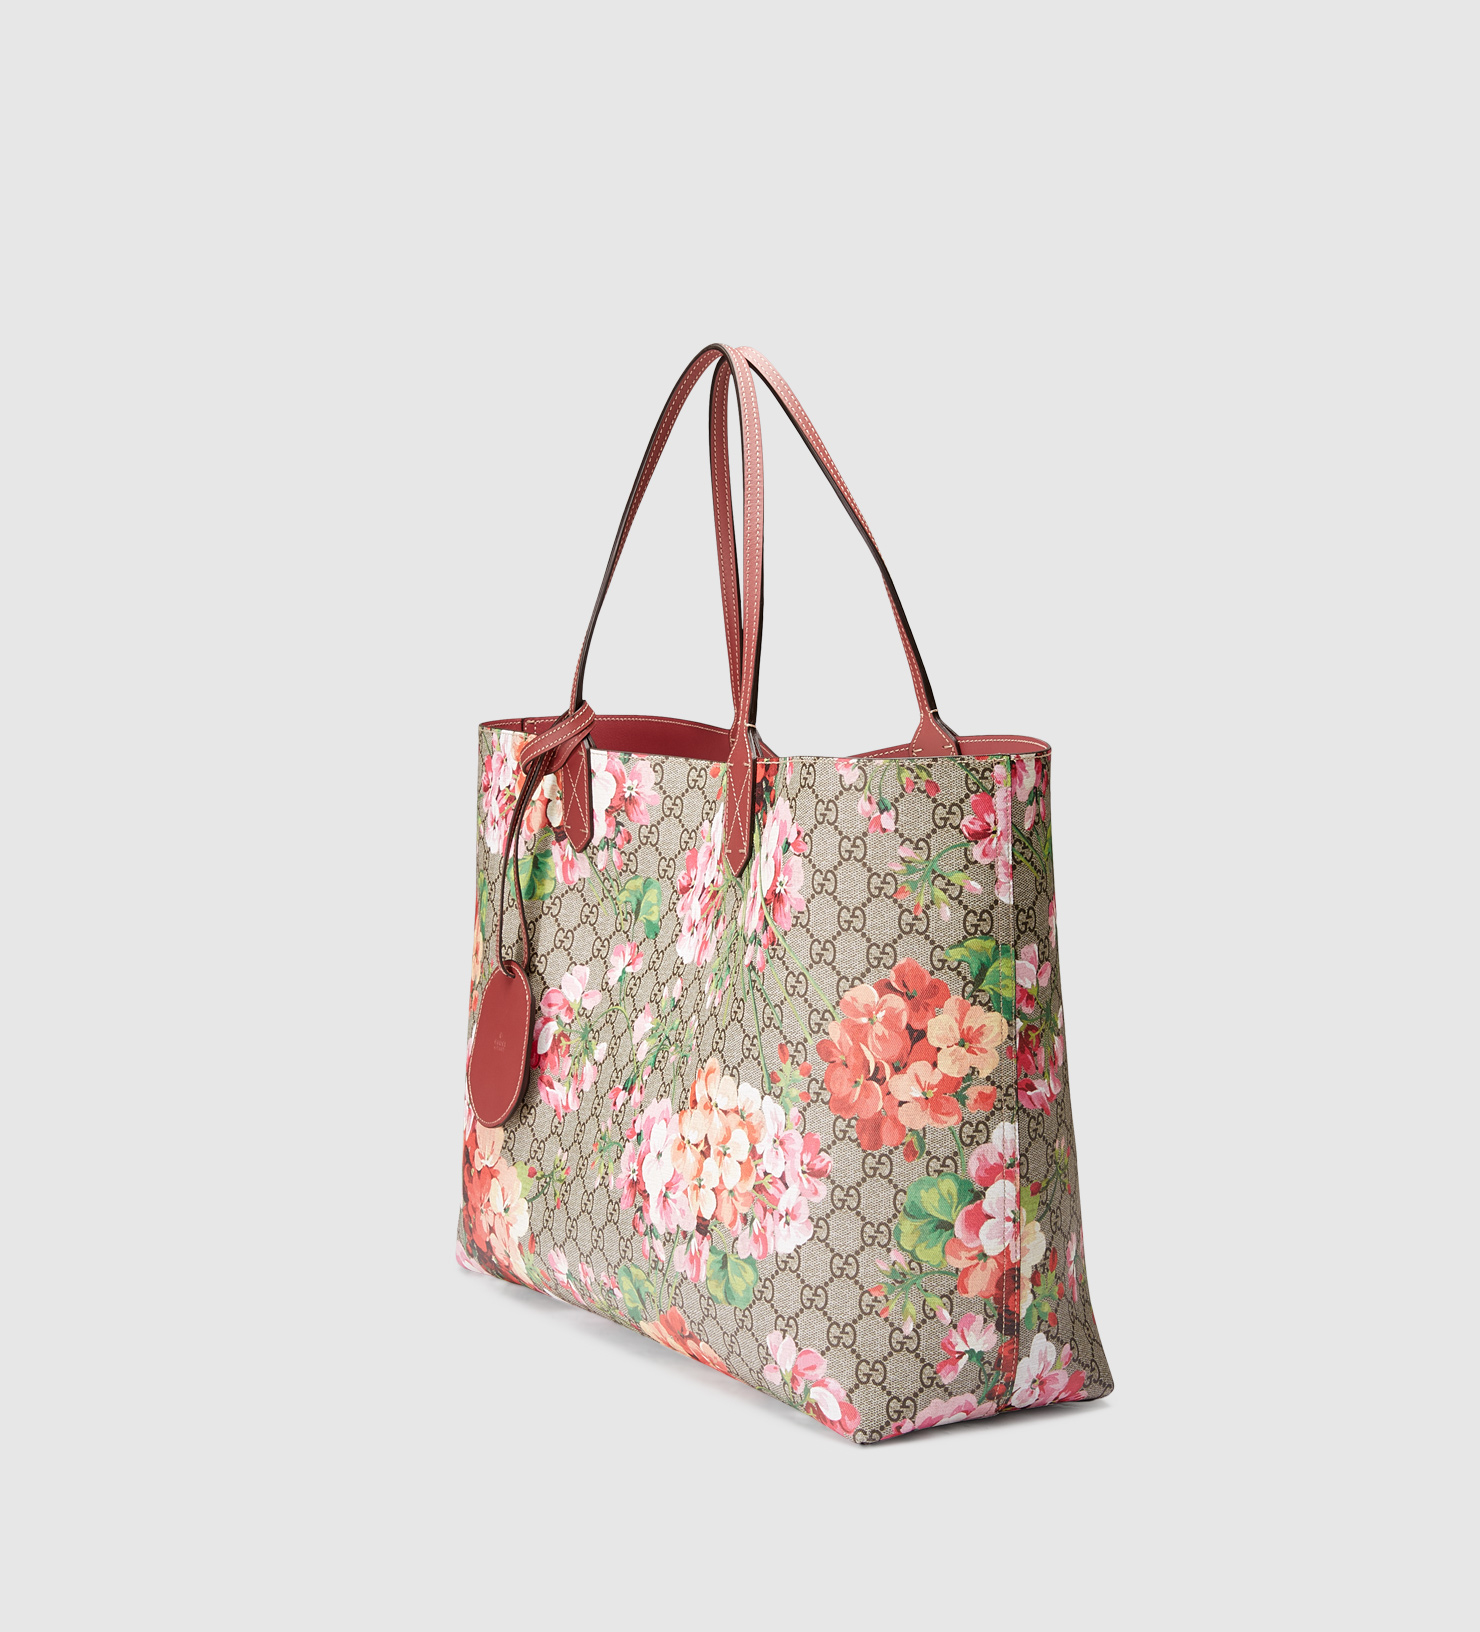 Gucci Reversible Gg Blooms Leather Tote - Lyst 29370fa1219f7